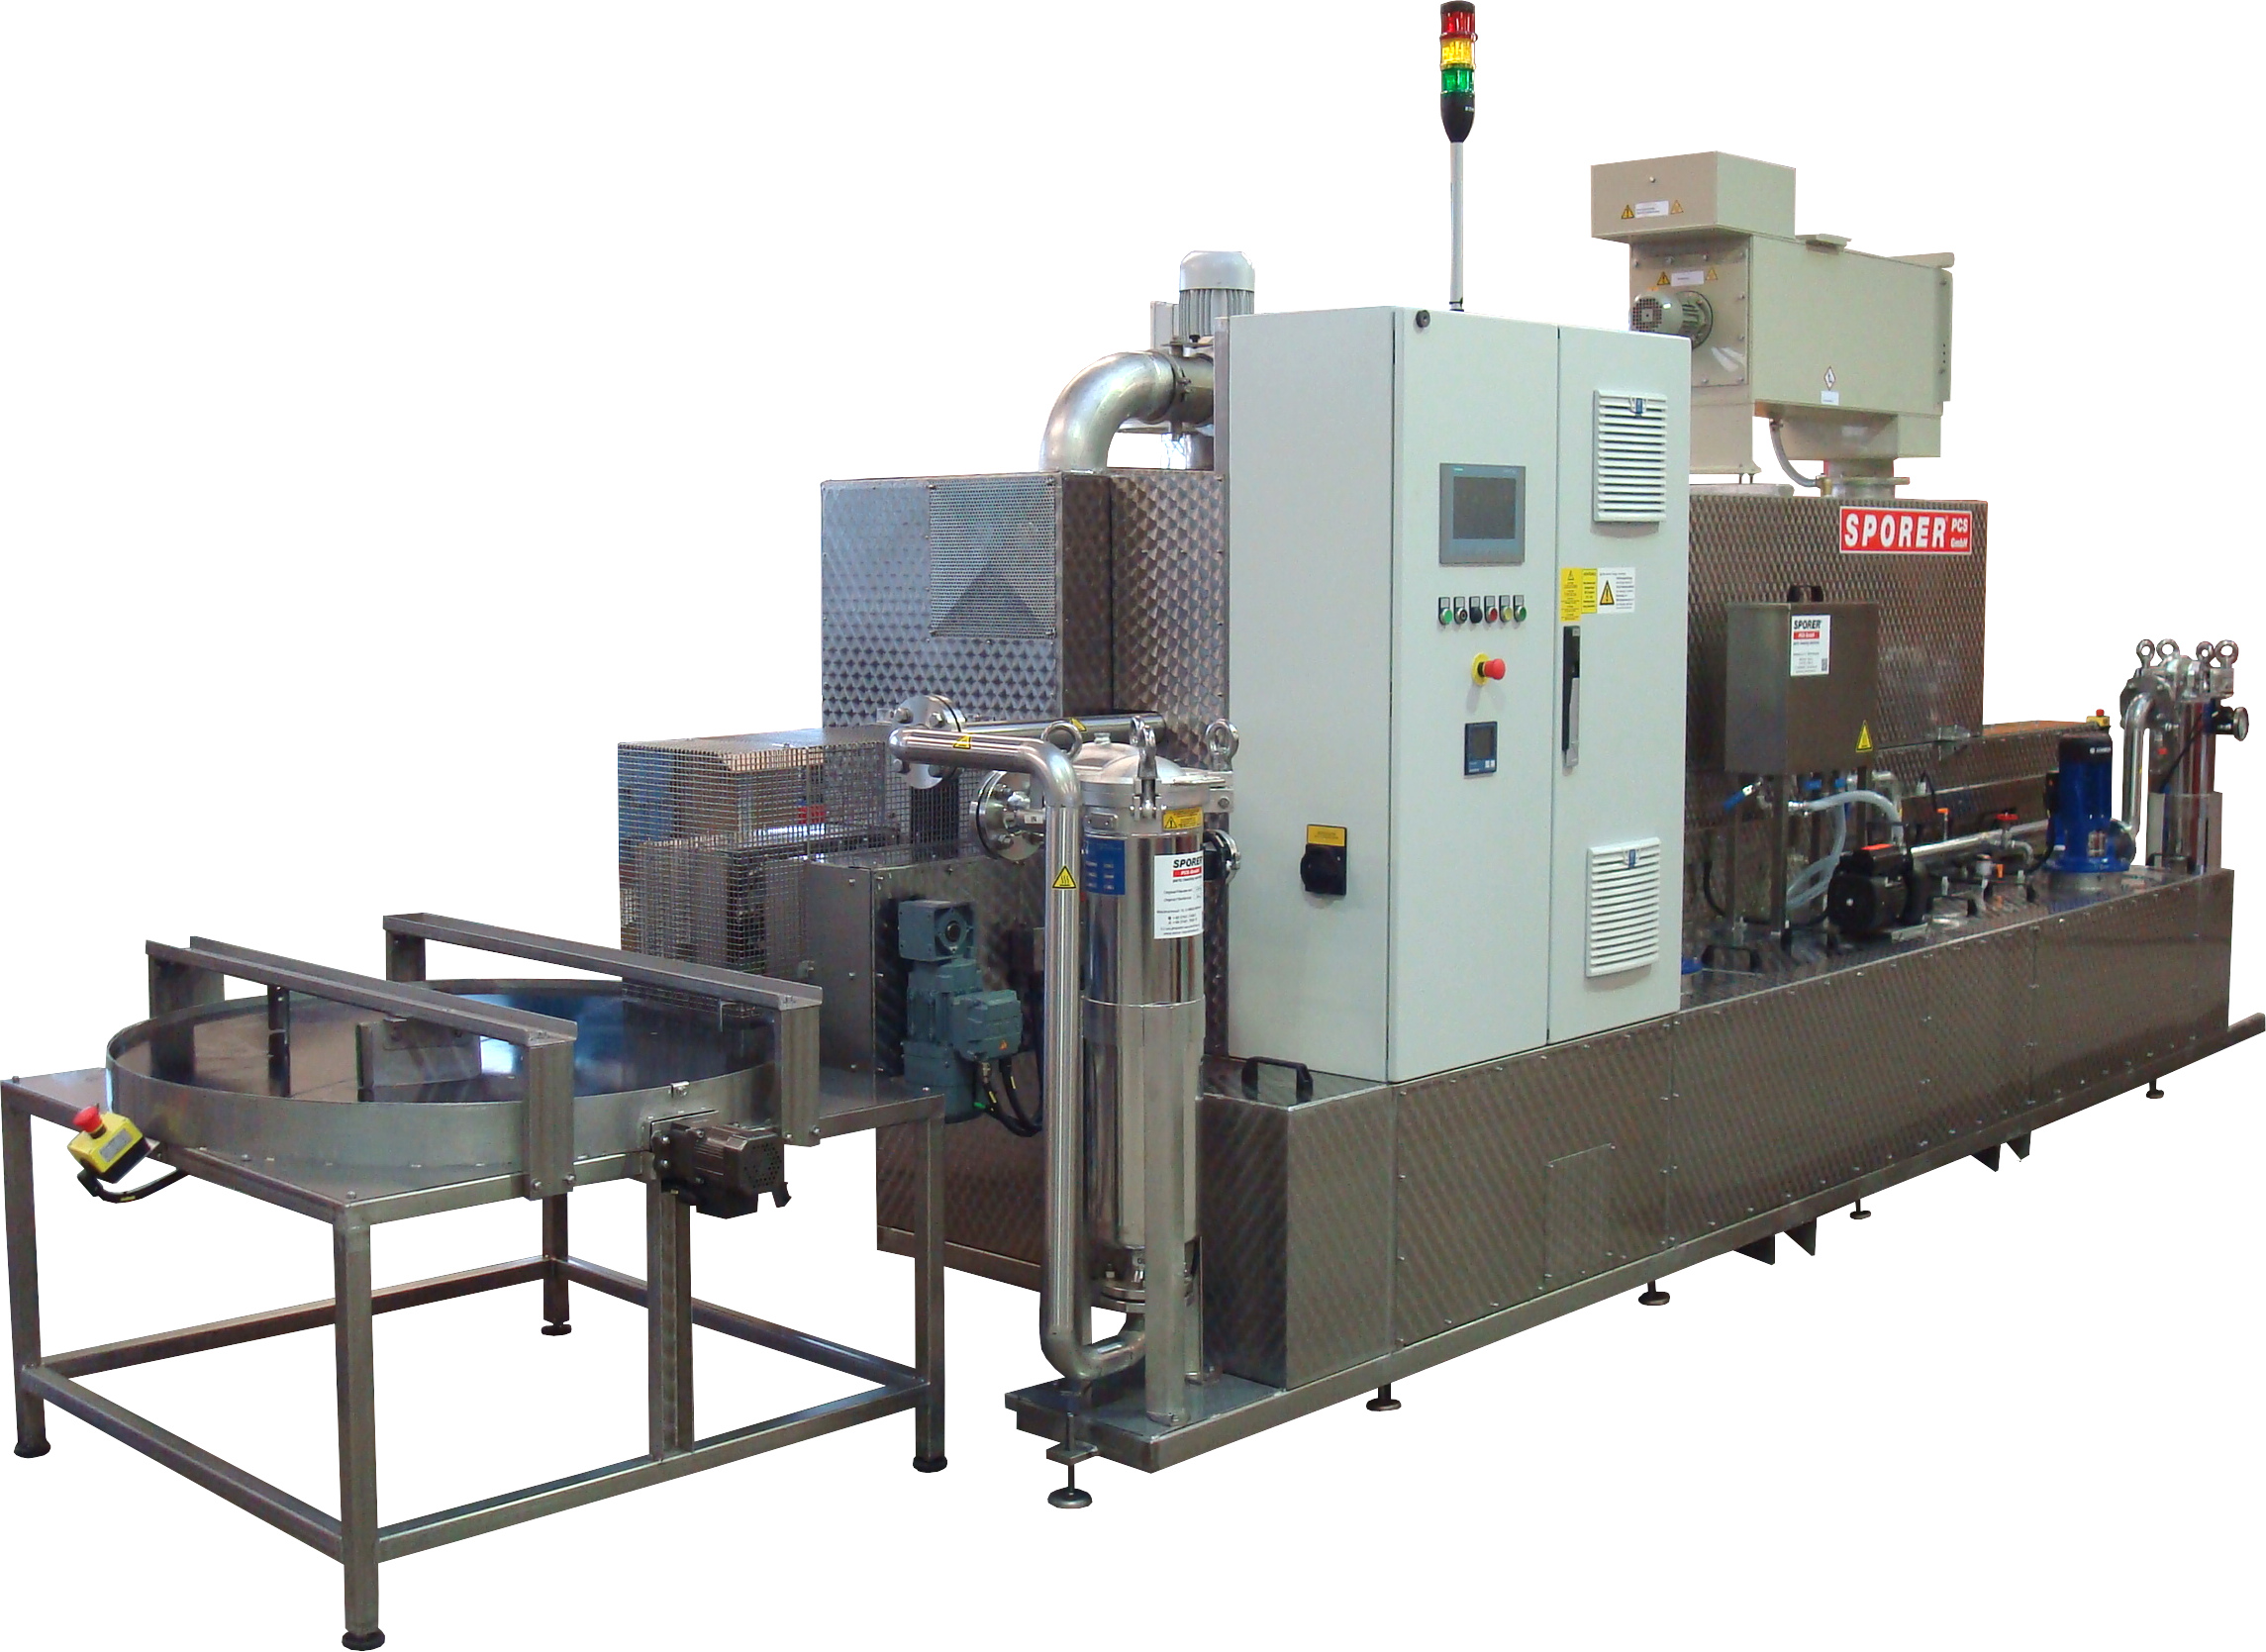 Robot-loaded continuous cleaning system cleaning/rinsing/drying with buffer turntable